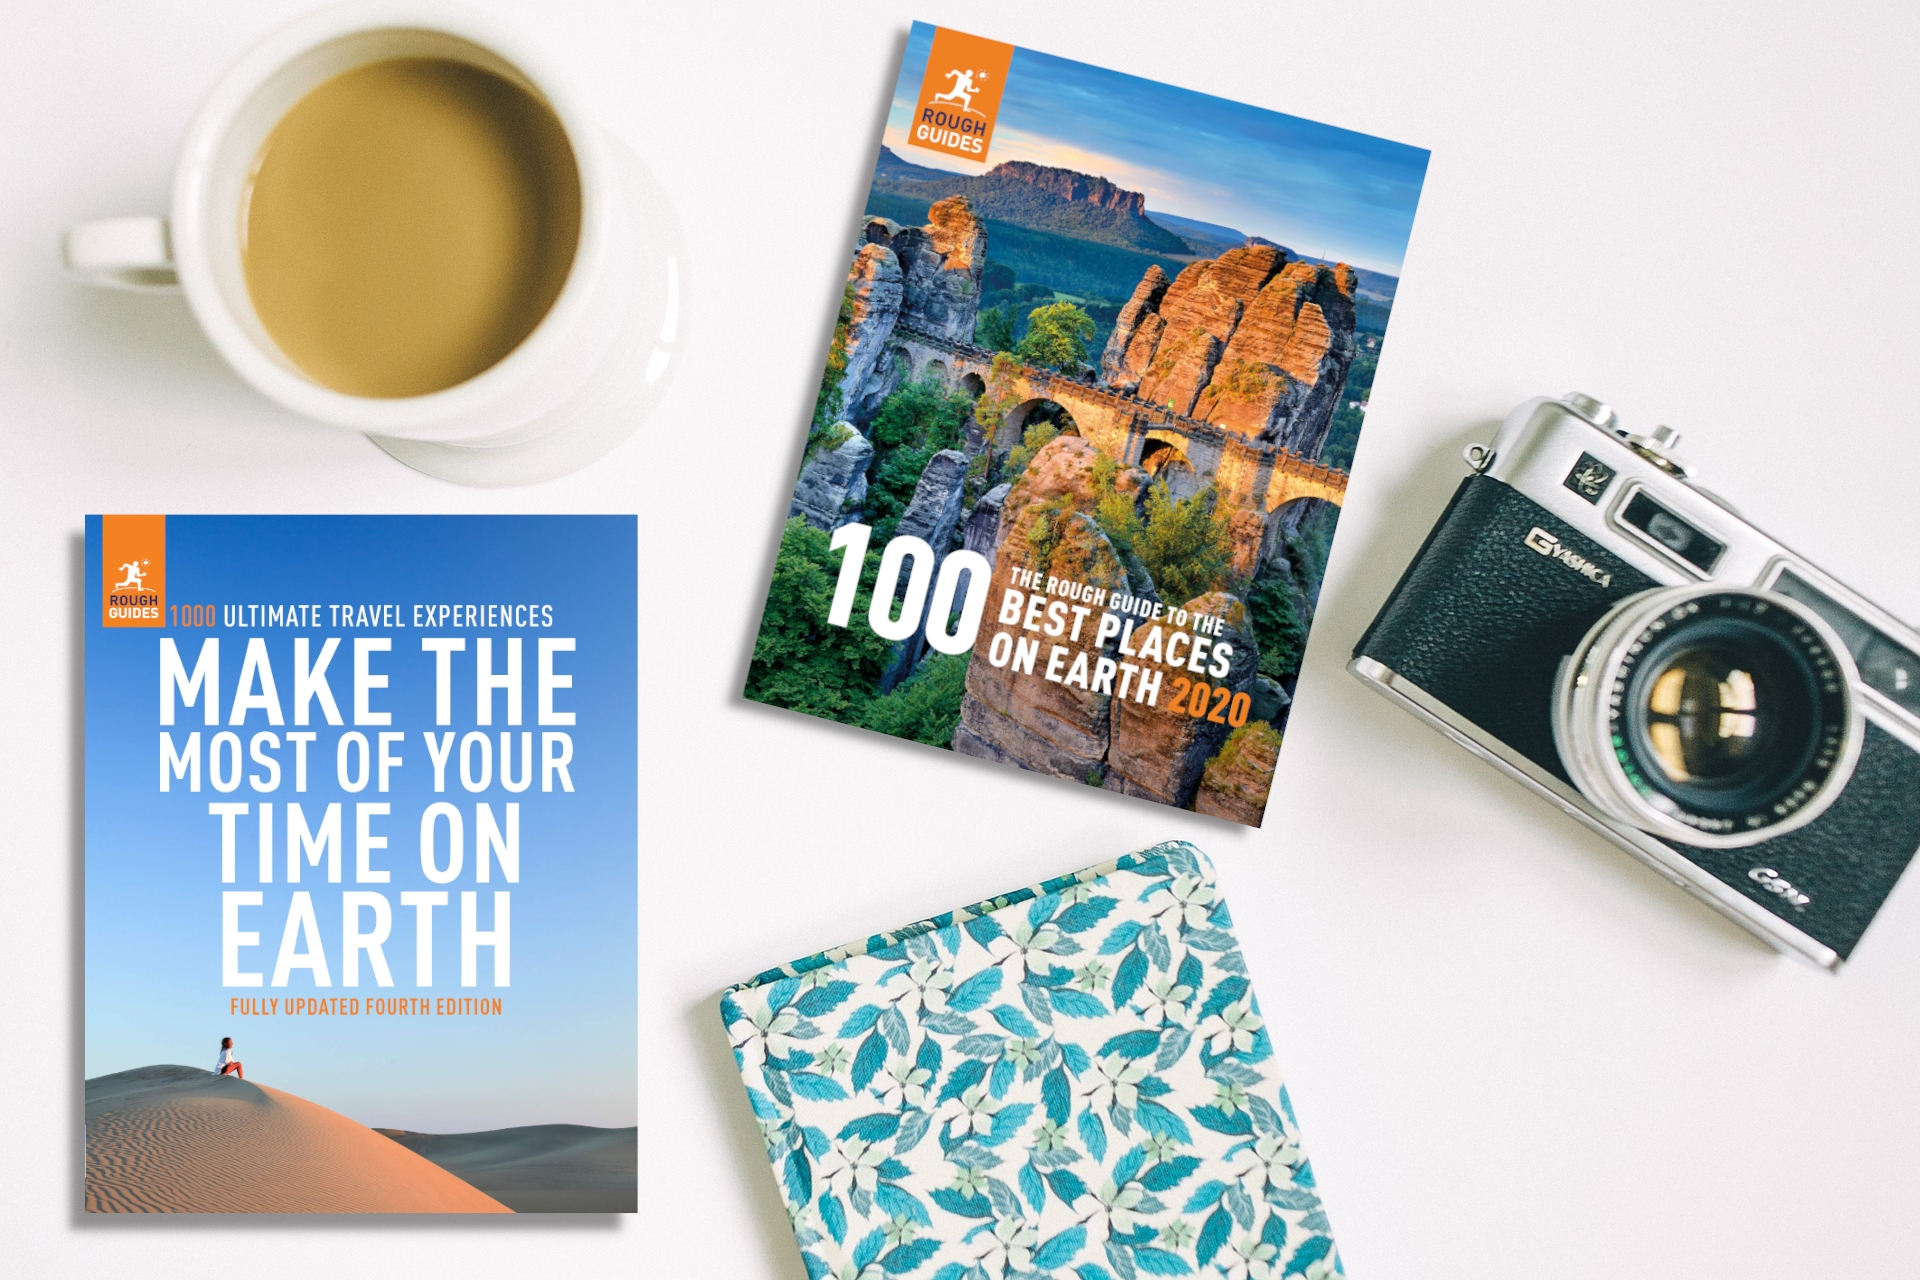 Beautiful Books, Beautiful World! - Make the most of your time on earth